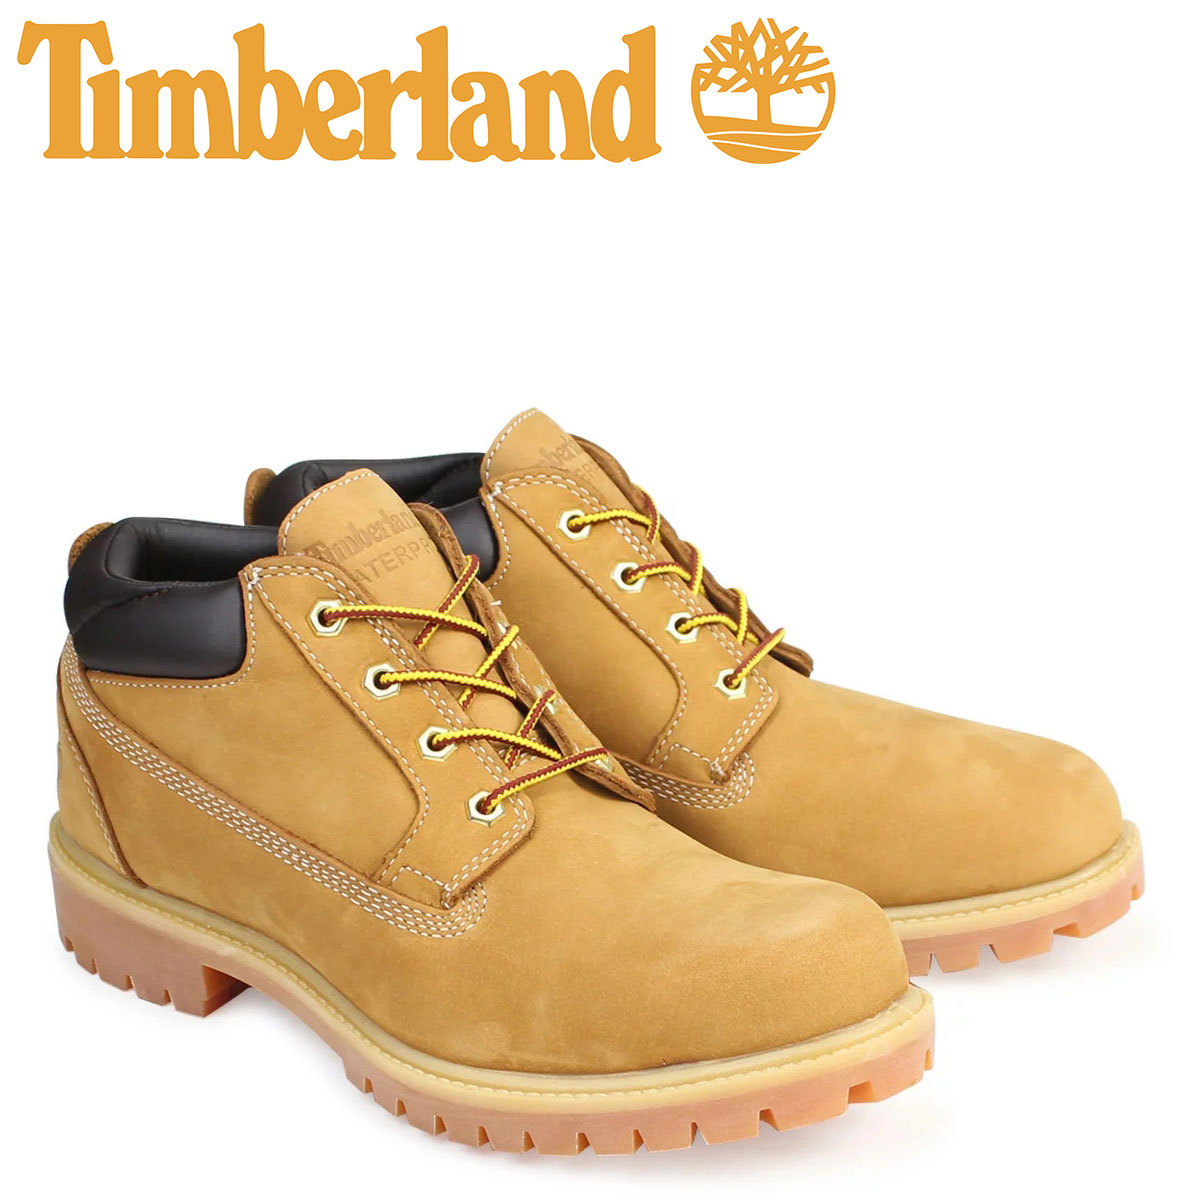 4fd331b6ac7 [SOLD OUT] Timberland Oxford men timberland boots premium PREMIUM  WATERPLOOF OXFORD 73,538W ワイズウィート waterproofing [1/31 Shinnyu load]